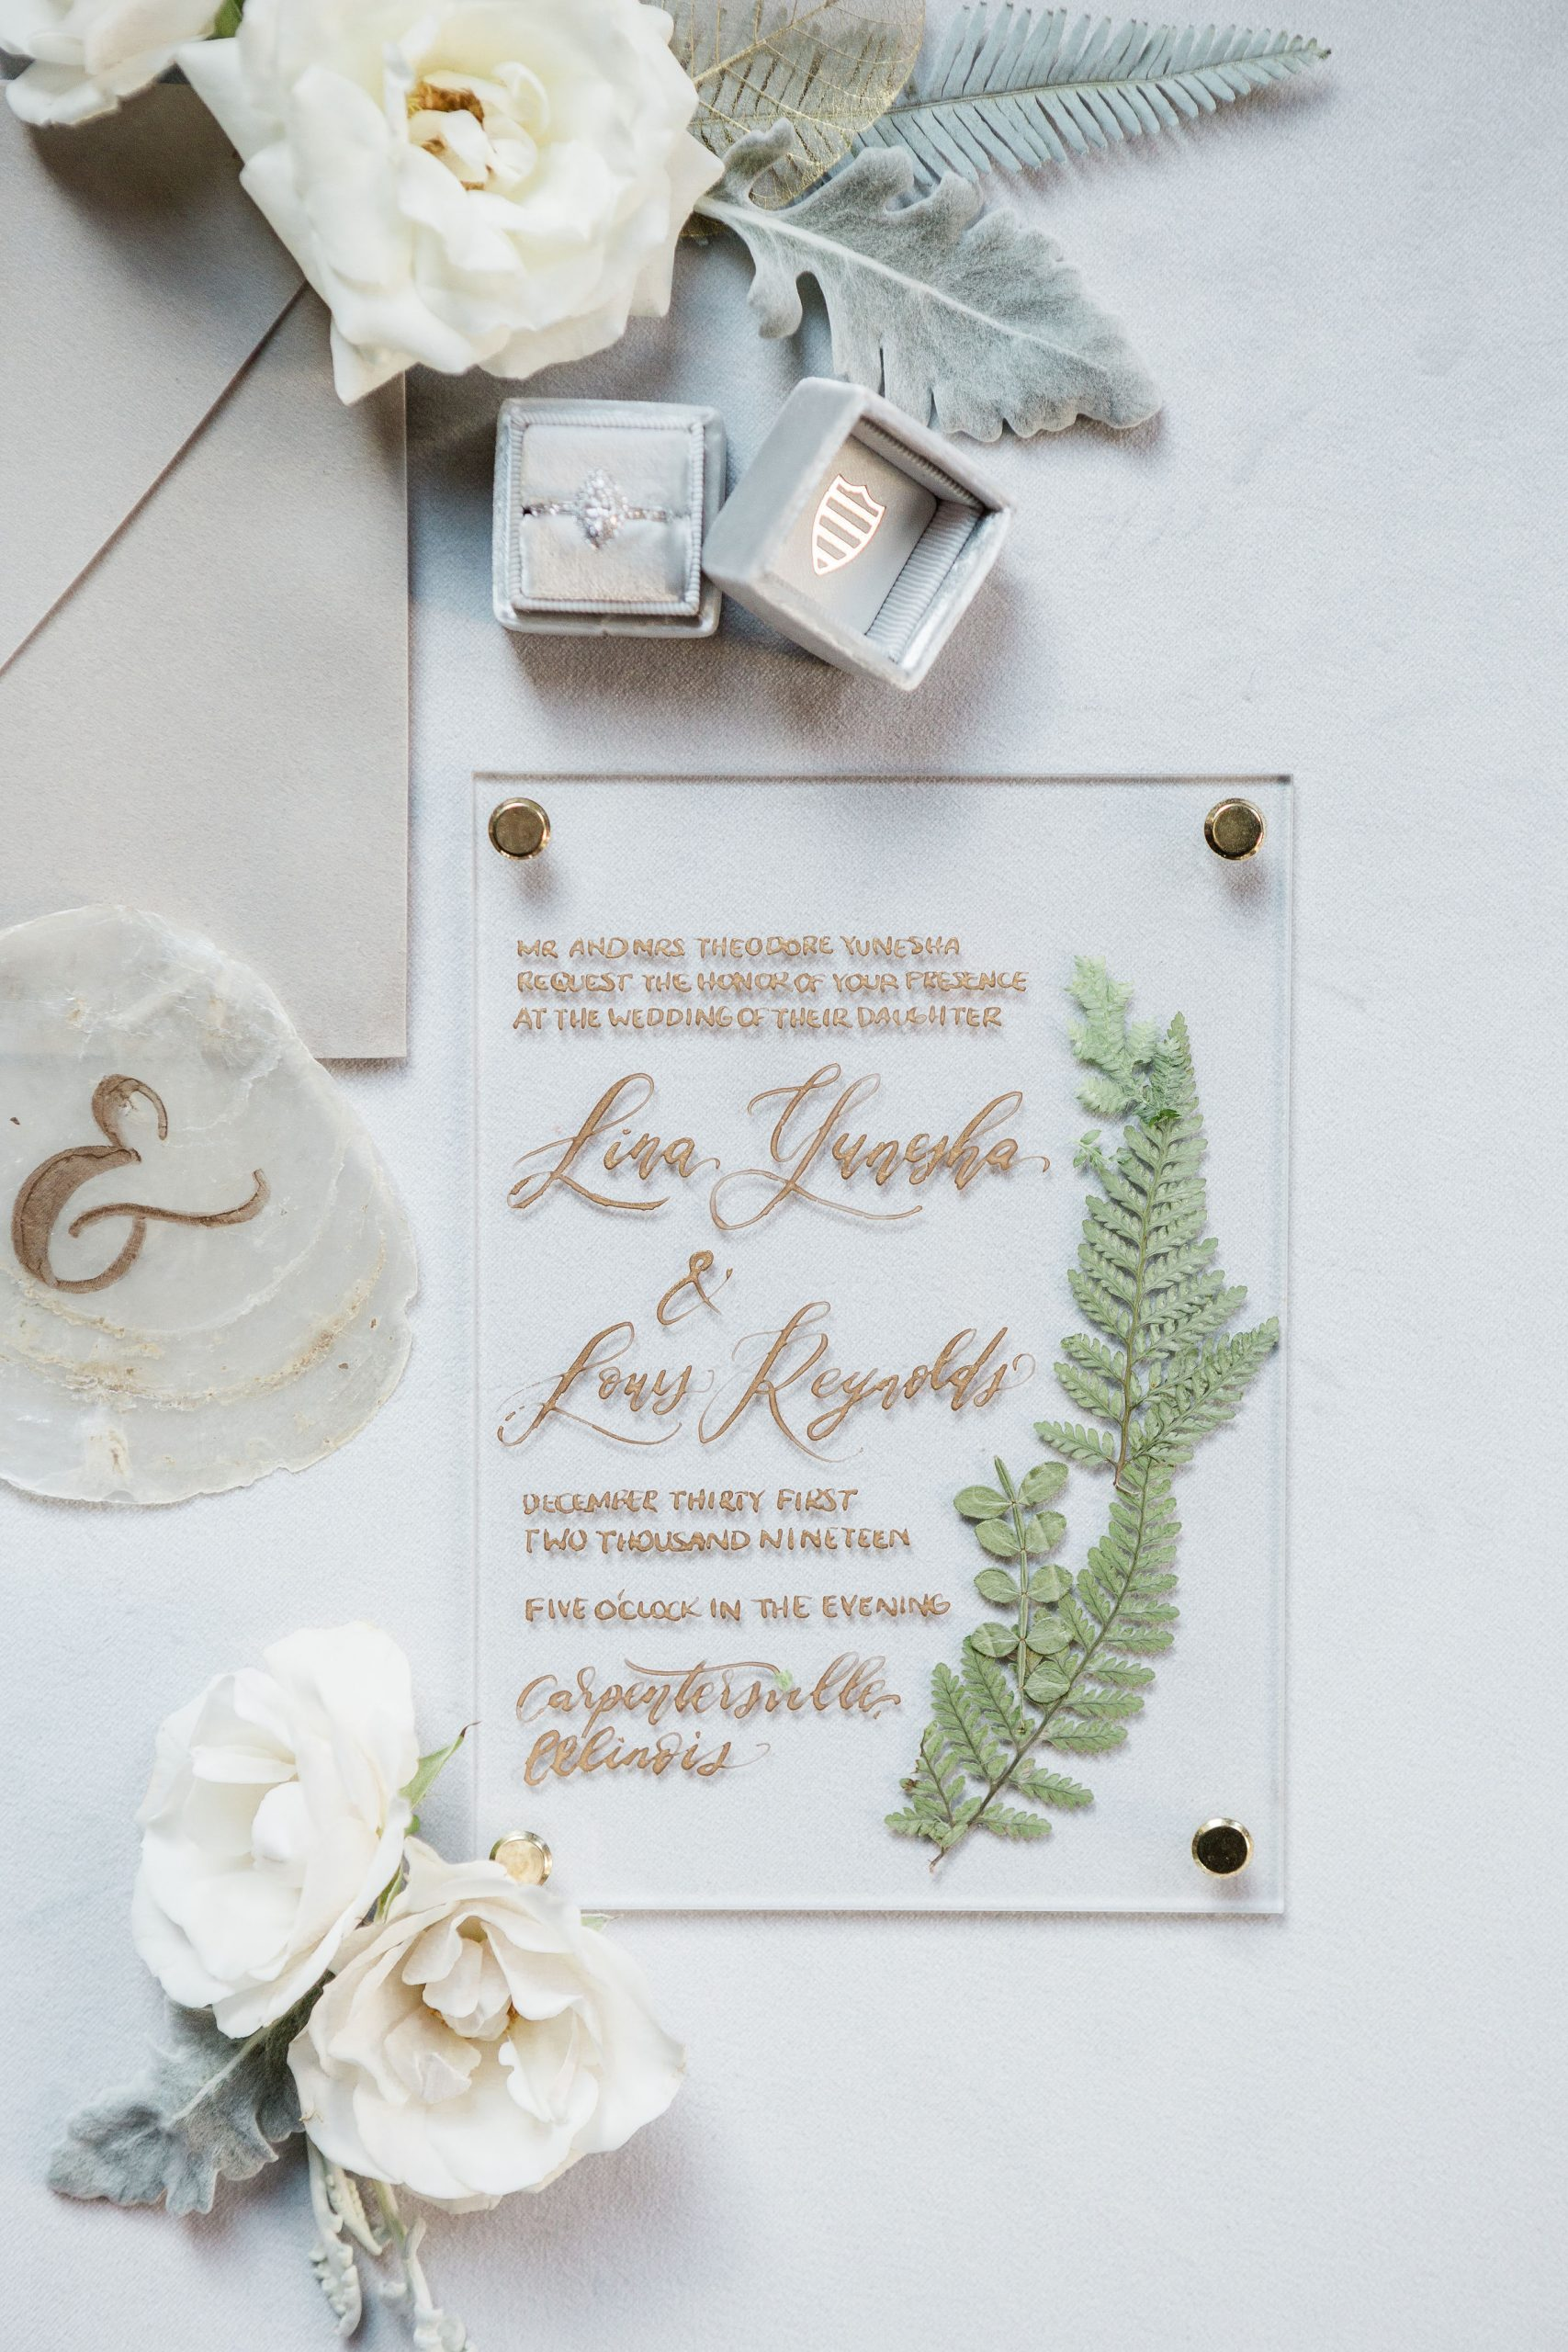 Invitation - Romantic Grey Industrial Wedding | The Industria by The Brix, Elgin, IL